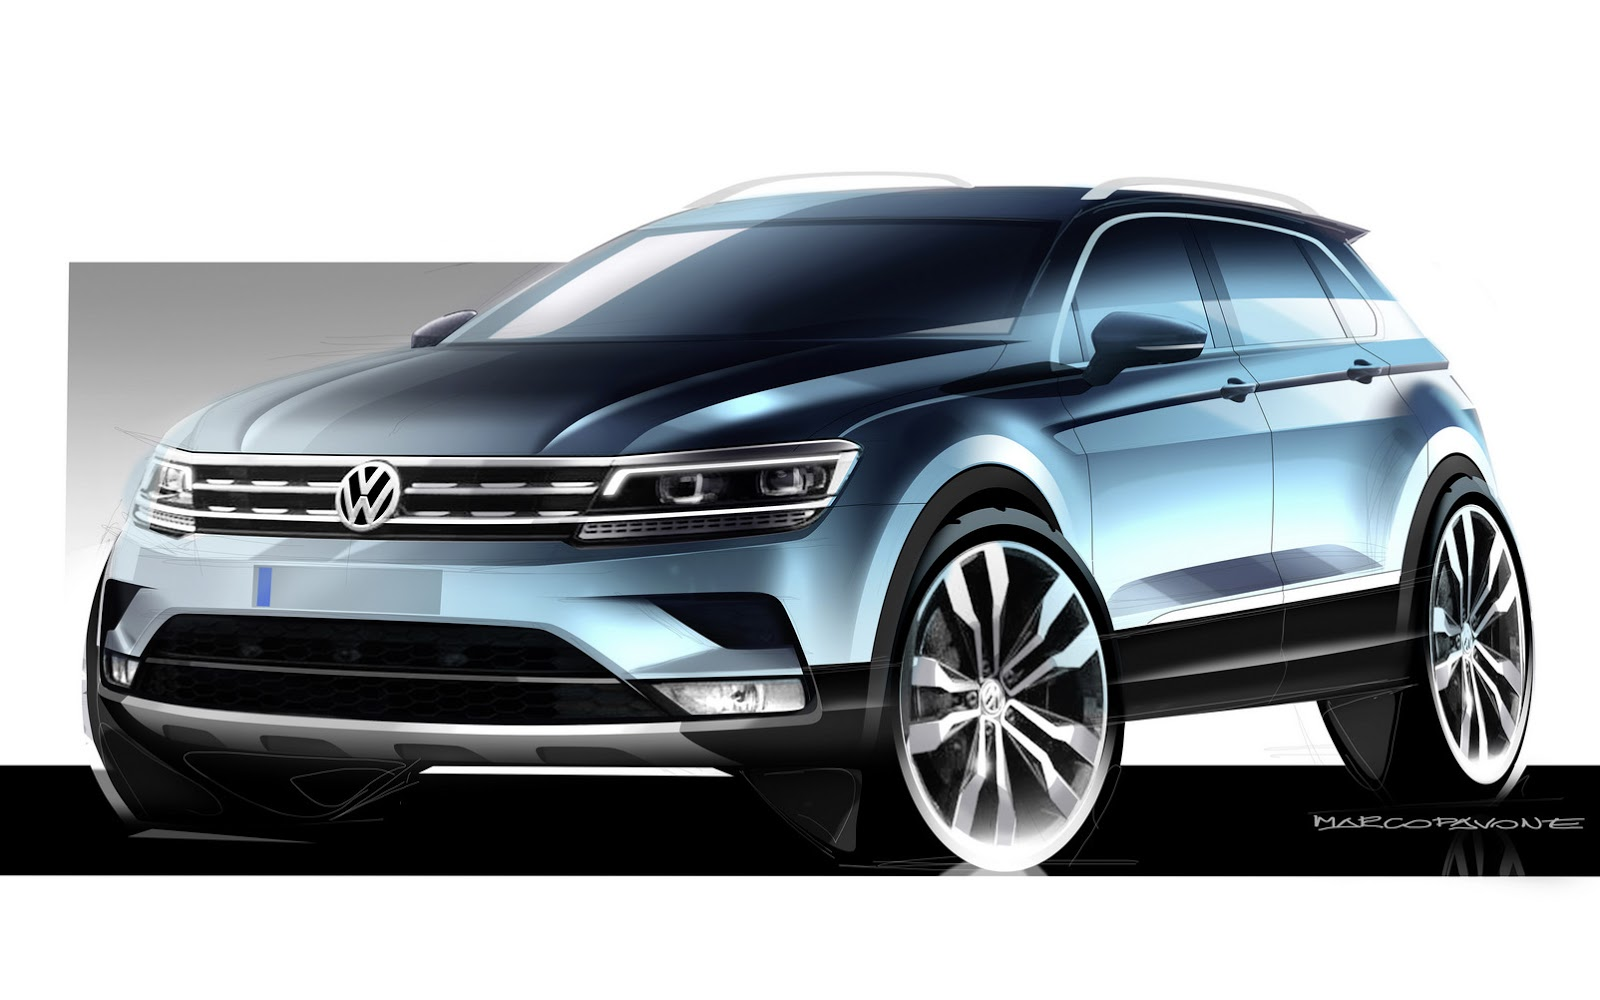 volkswagen tiguan 2016 volkswagen autopareri. Black Bedroom Furniture Sets. Home Design Ideas